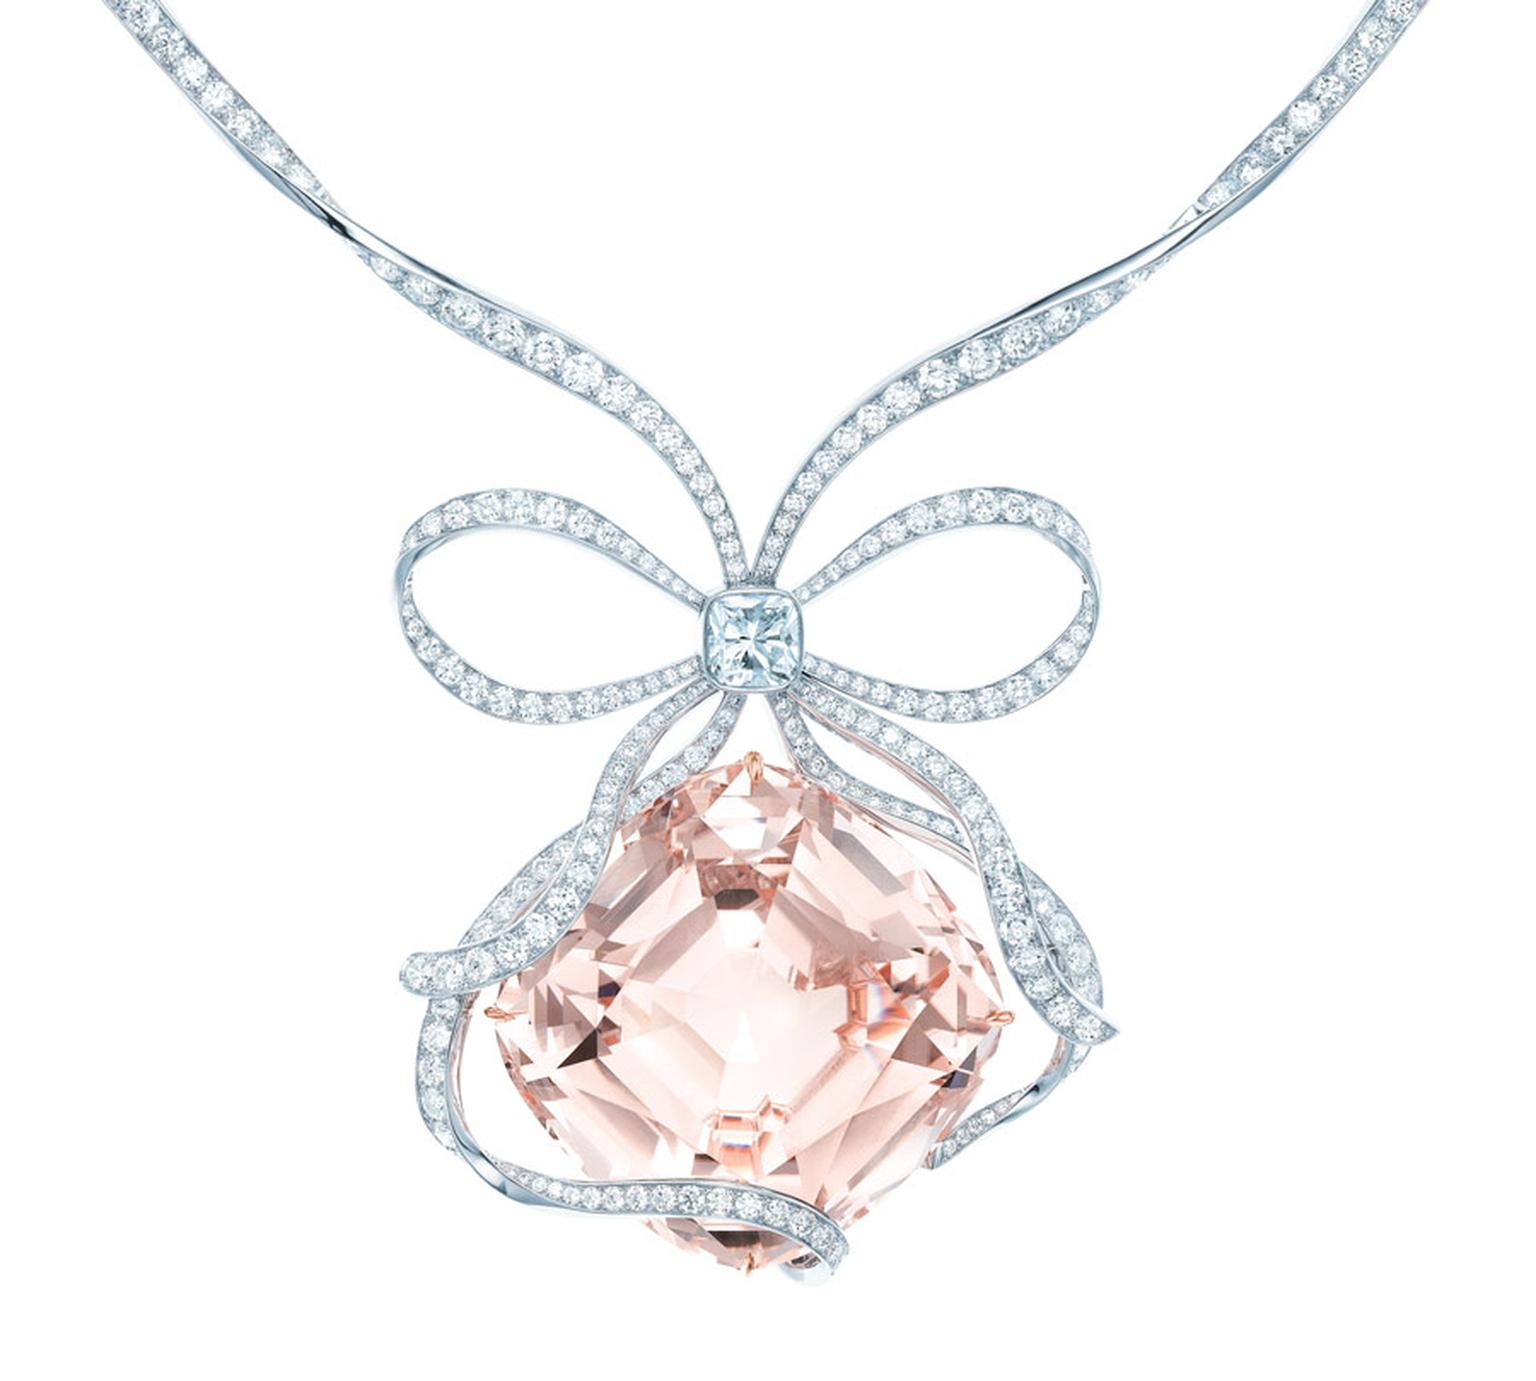 Tiffany-Morganite.jpg